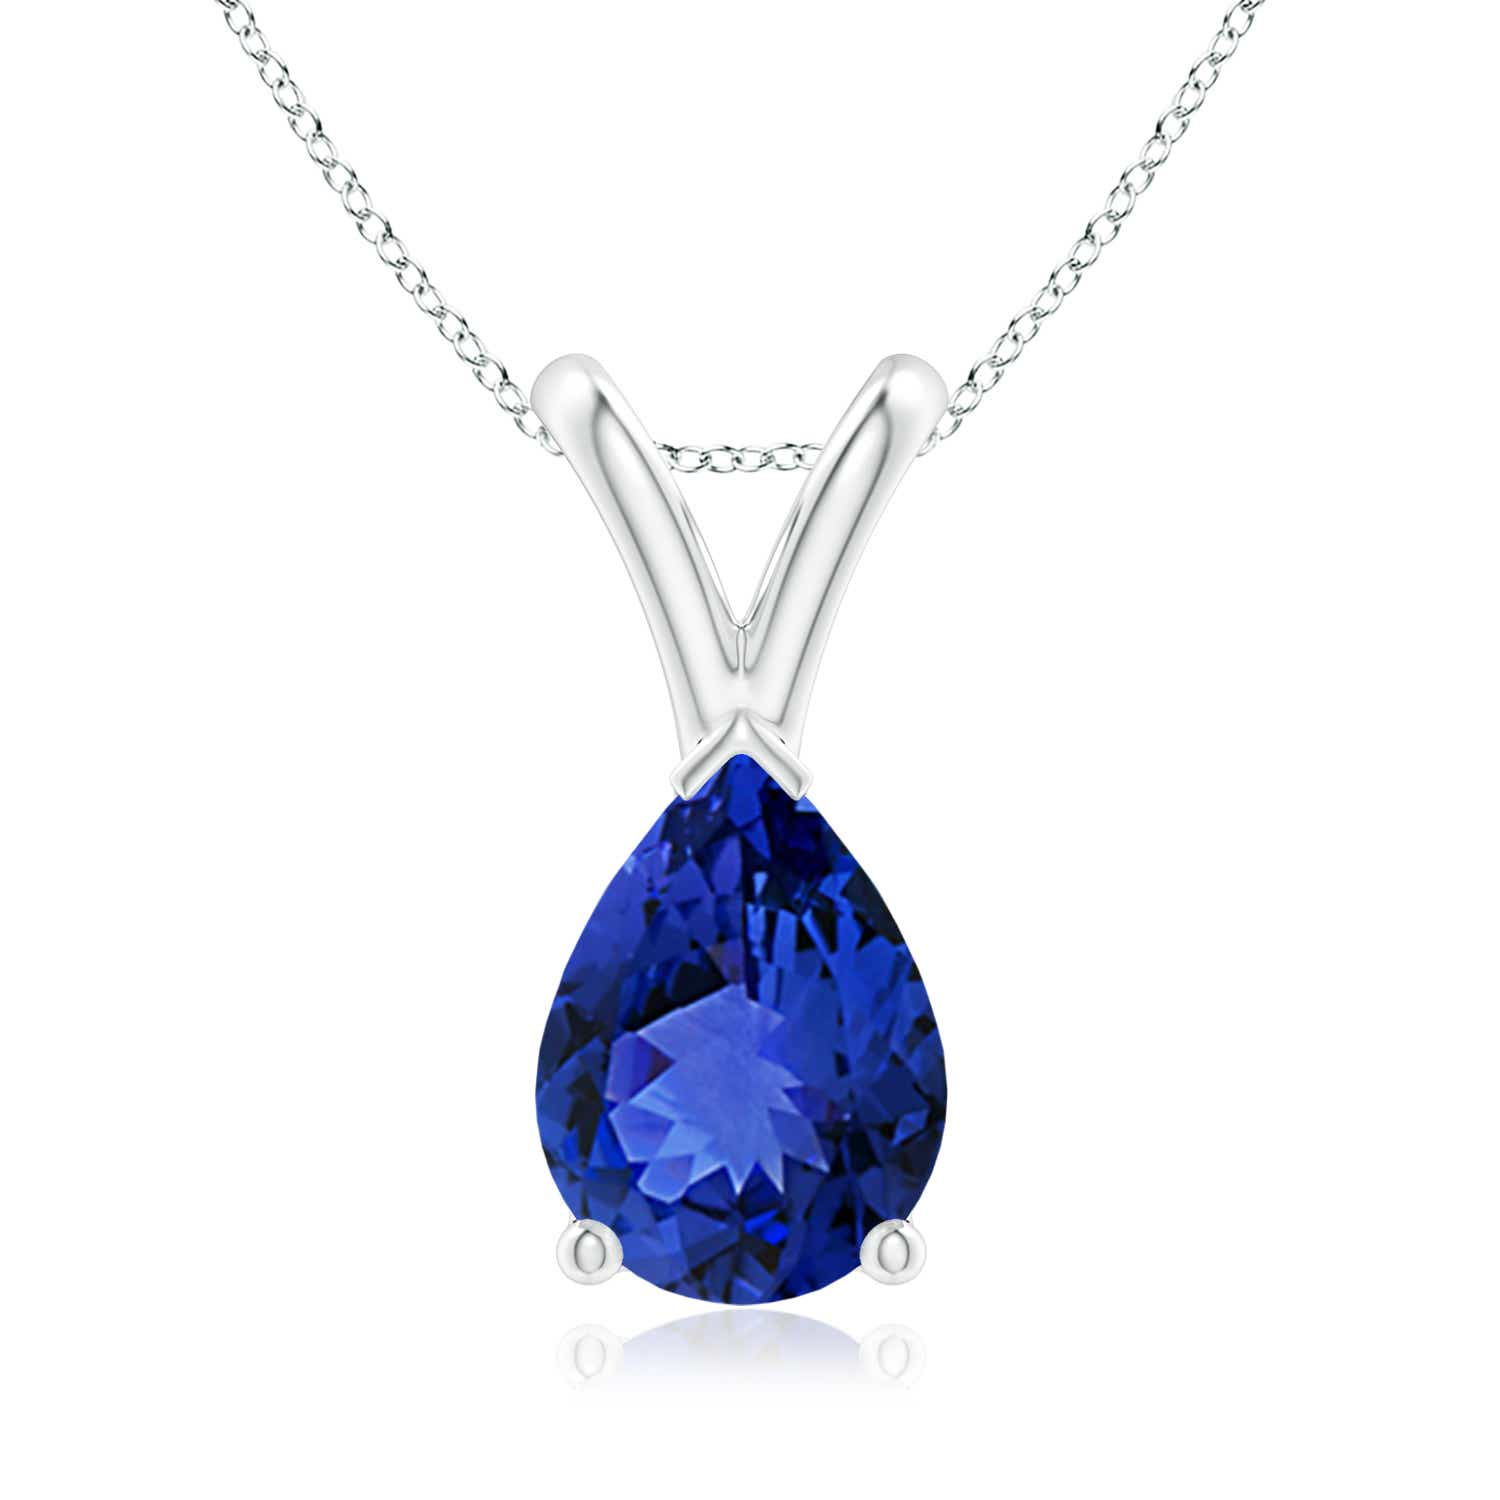 Angara Pear-Shaped Tanzanite V-Bale Pendant enDe25